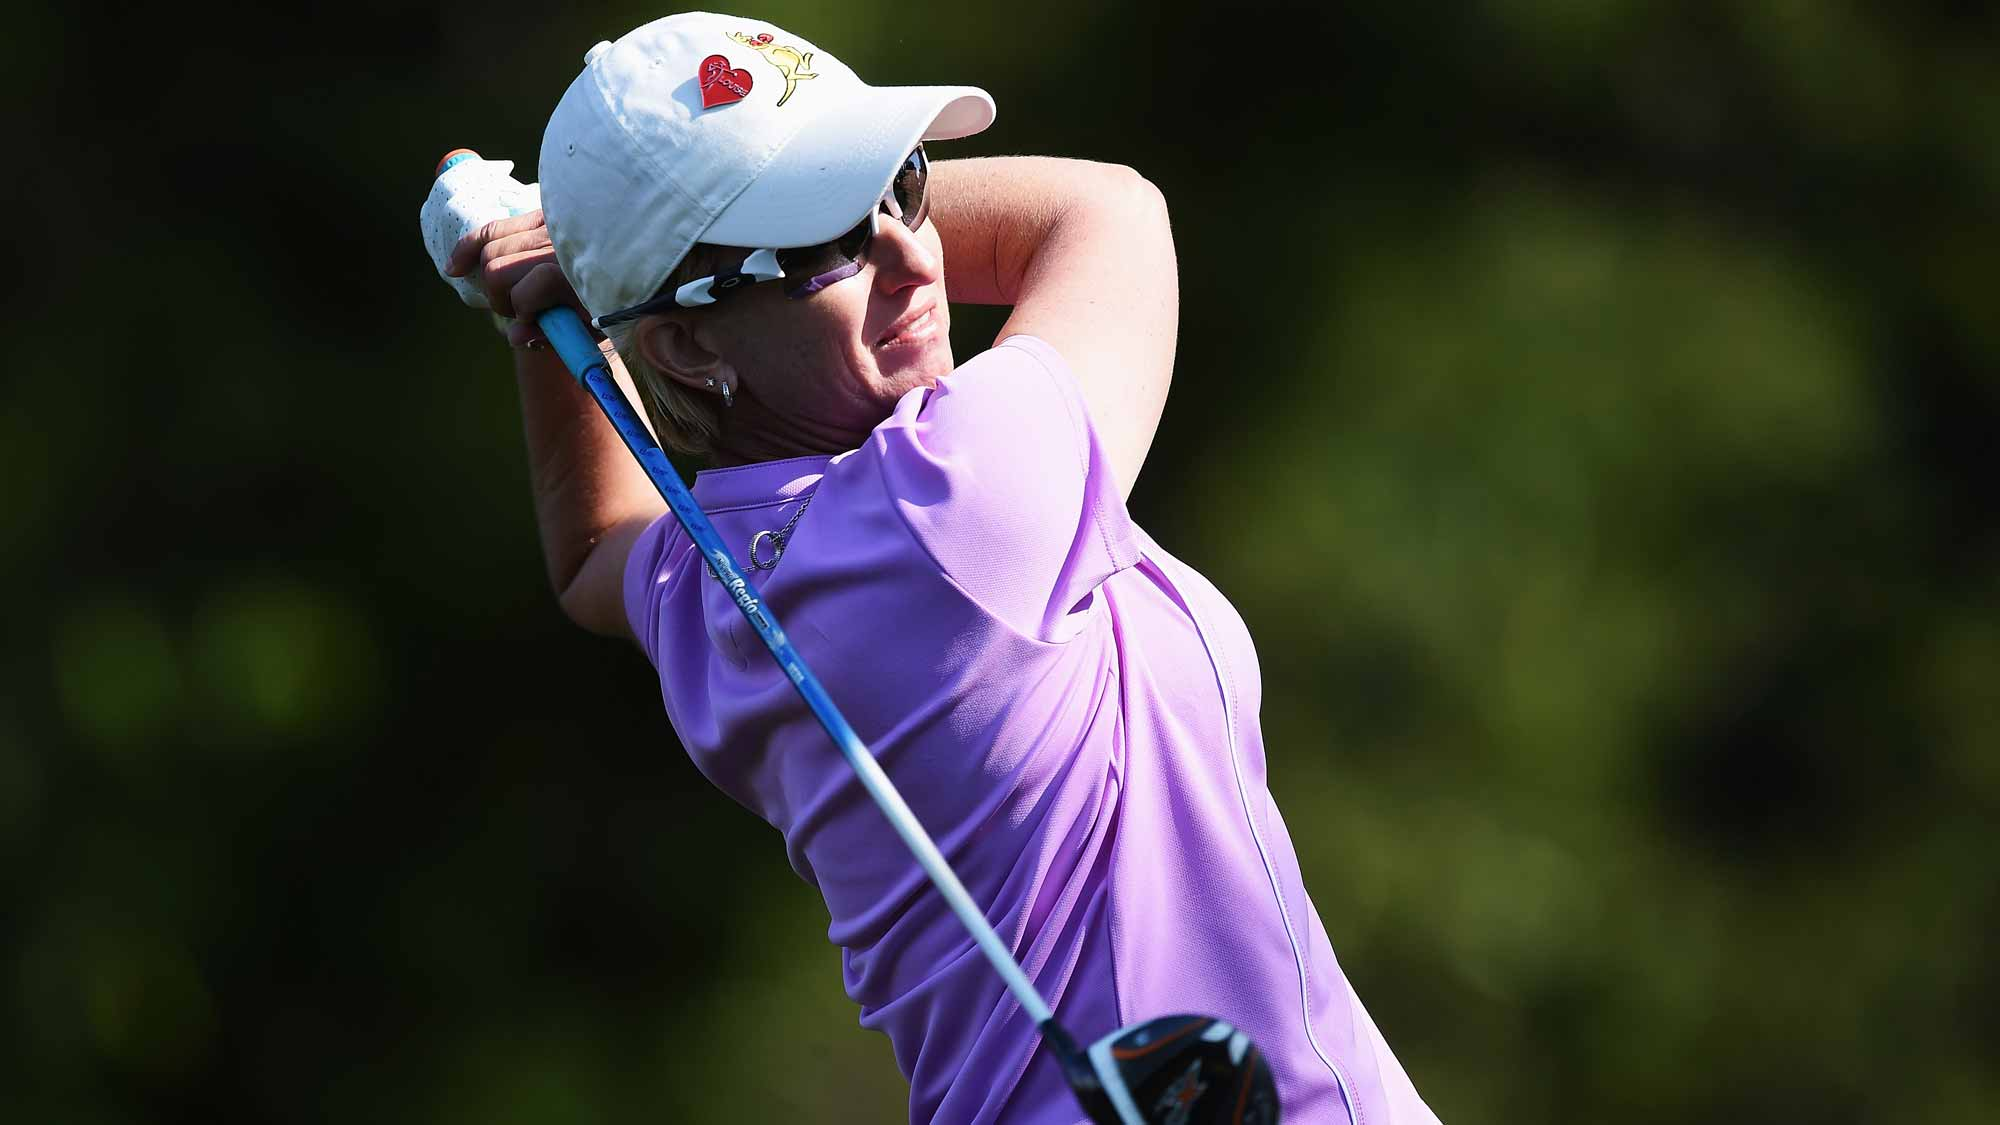 Karrie Webb of Australia plays a shot during the first round of the Evian Championship Golf on September 10, 2015 in Evian-les-Bains, France